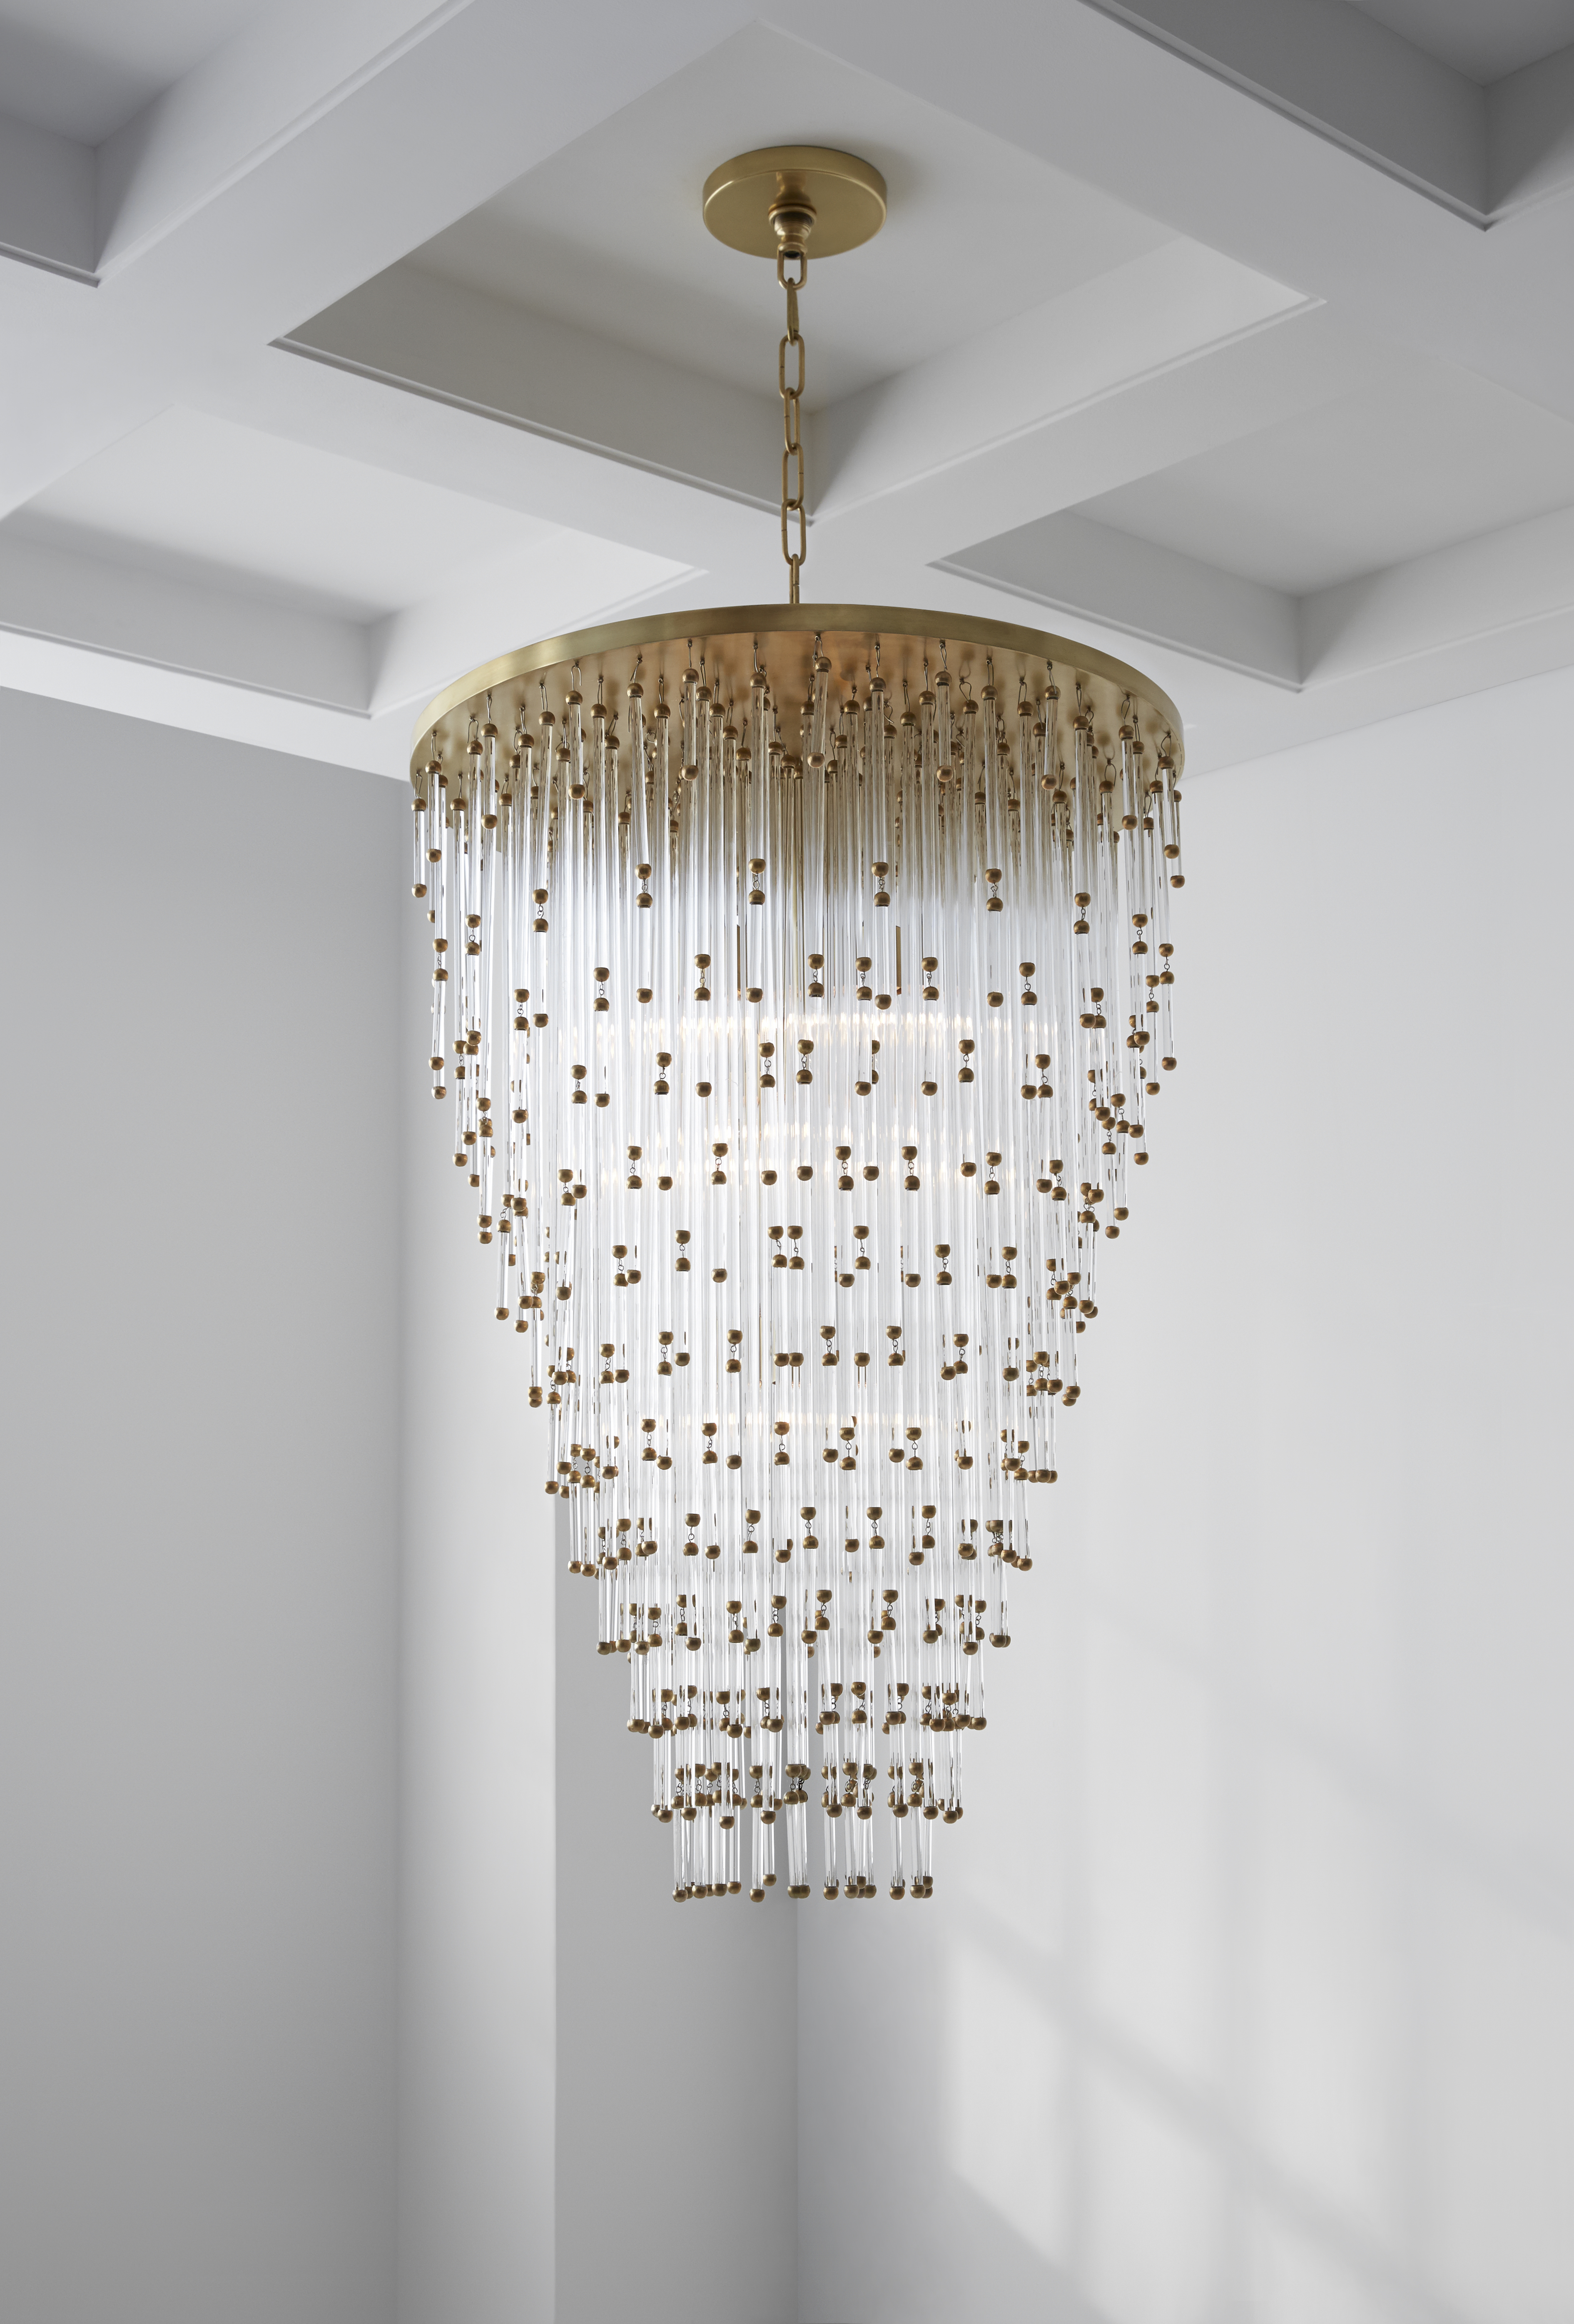 b prd clear glass effect at light chandelier diy q chrome ceiling departments bubble lamp bq cluster